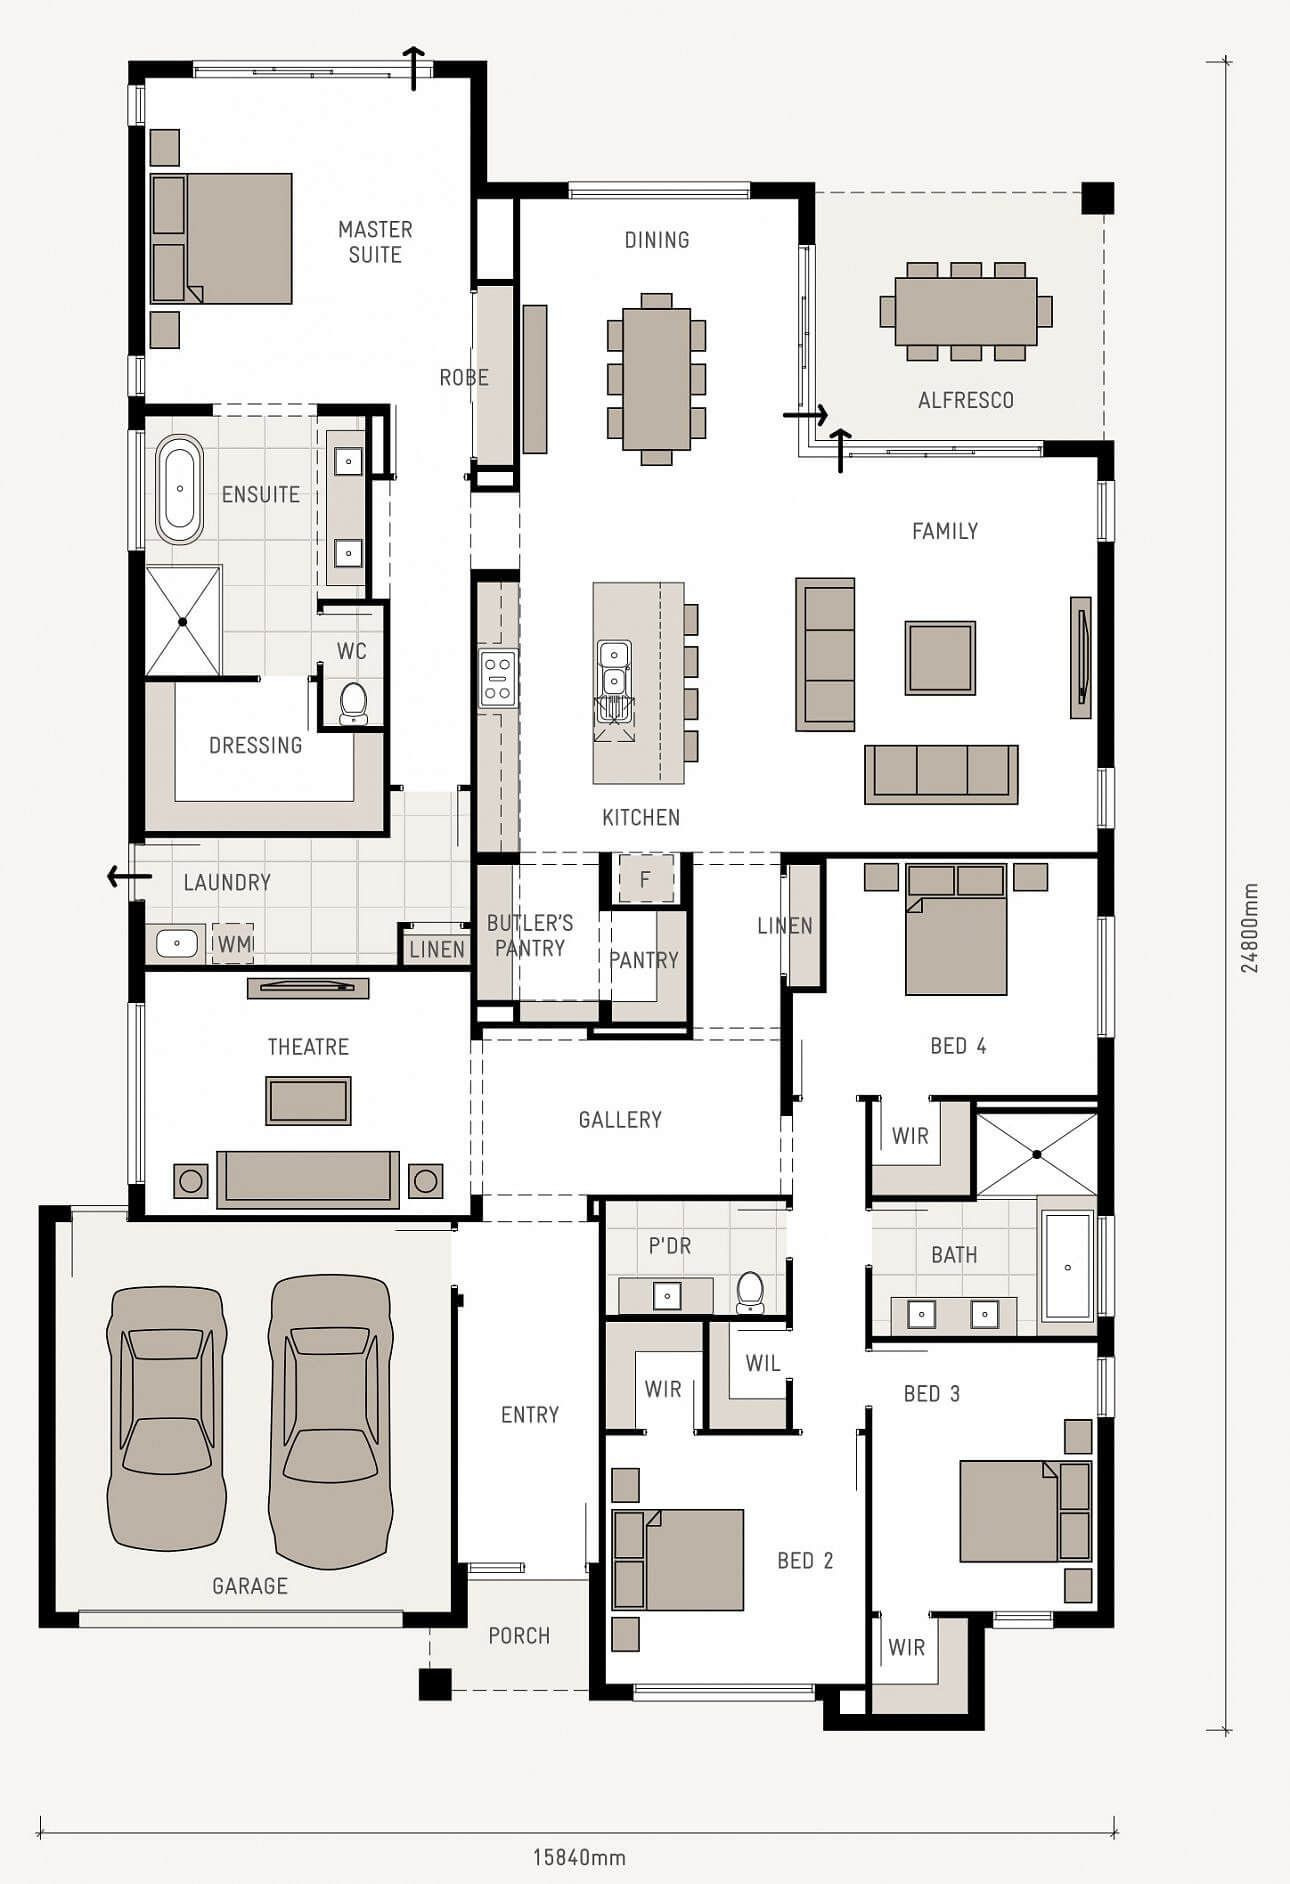 Building A House Layout Beautiful some Things Not to for when Building A New House